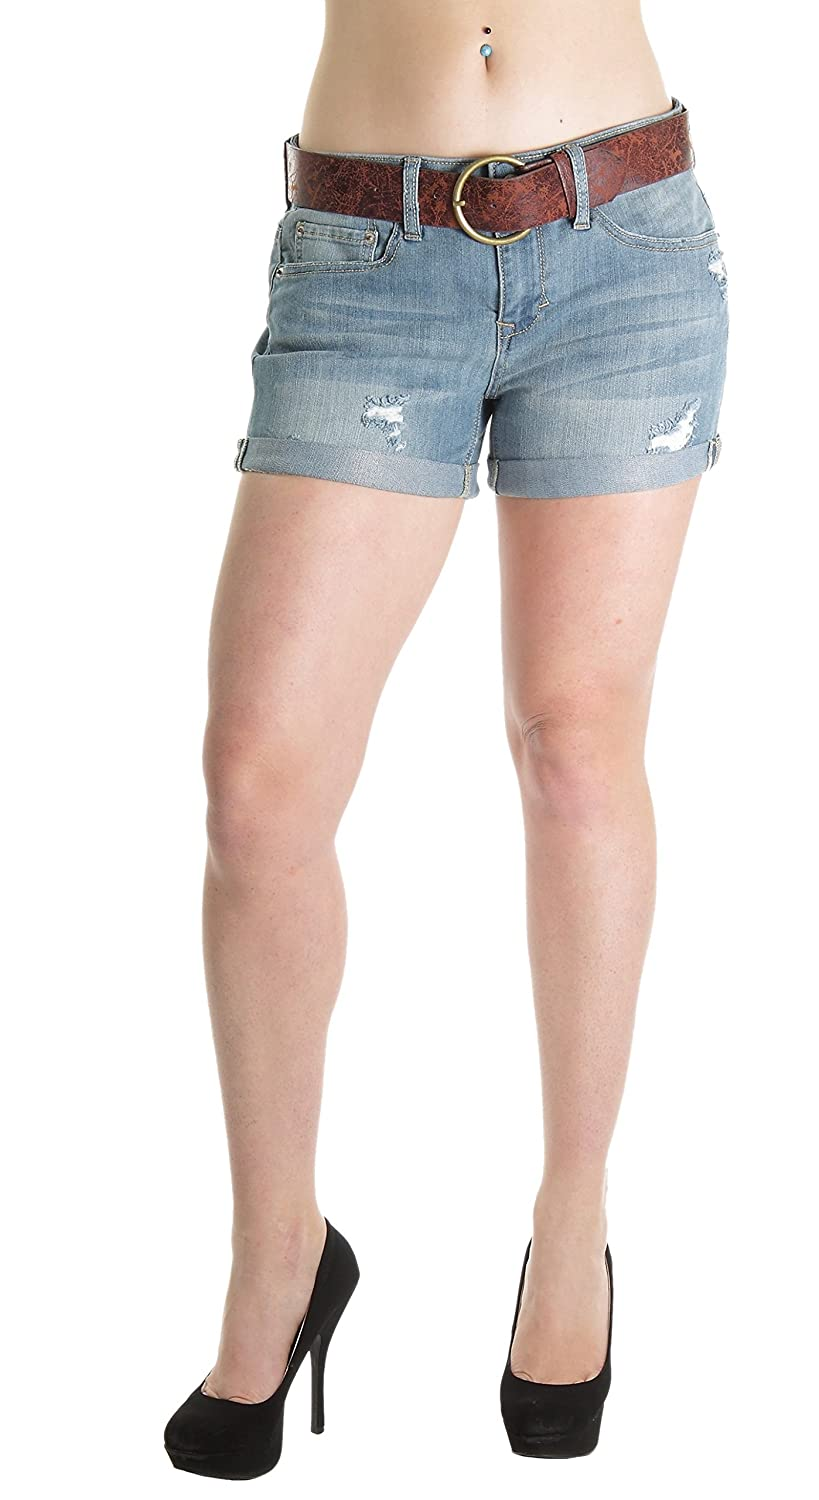 Bongo KA8570SH Jeans, Premium Destroyed Ripped Belted Booty Shorts